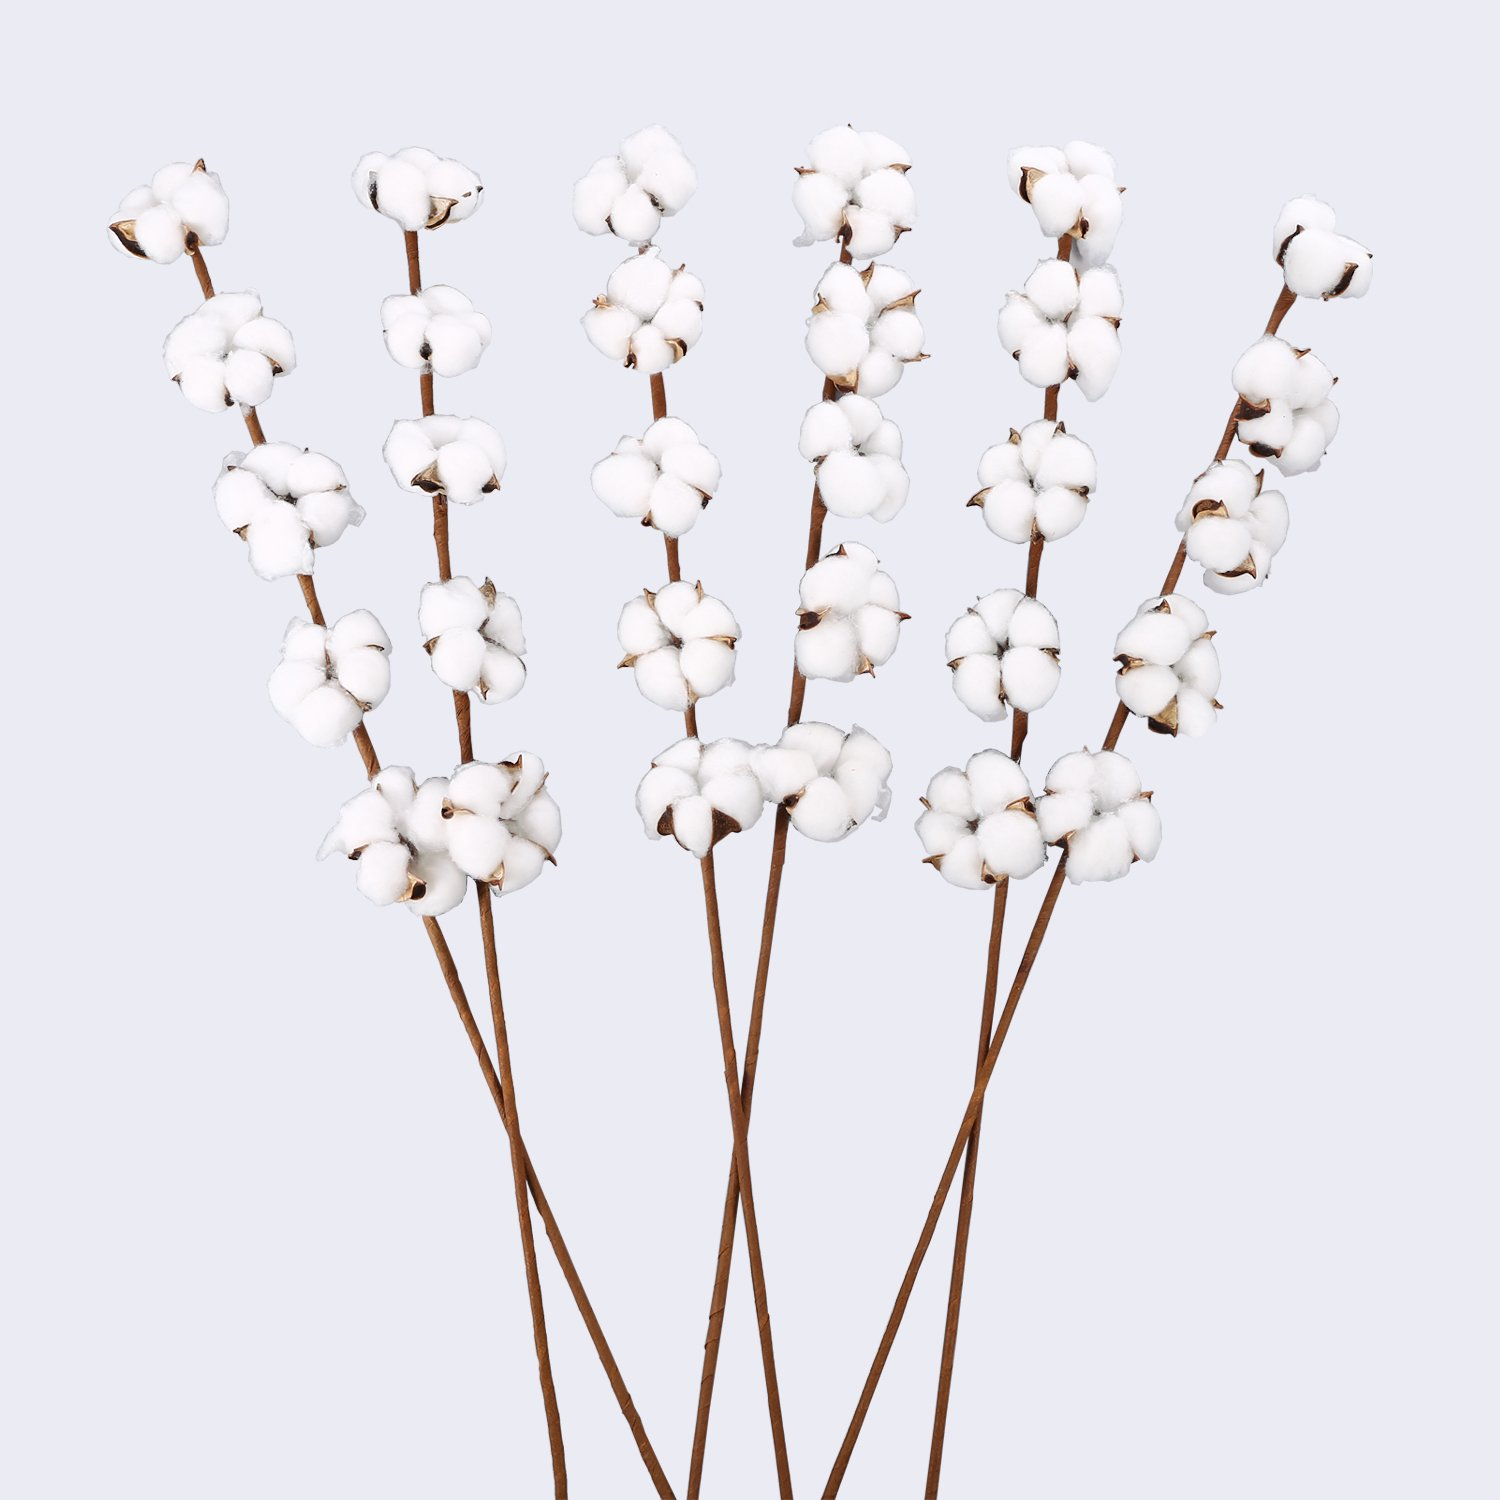 6 Pack 27 inch Cotton Stems Farmhouse Decor Rustic Style Vase Filler Floral Decoration Flower - VGIA by VGIA